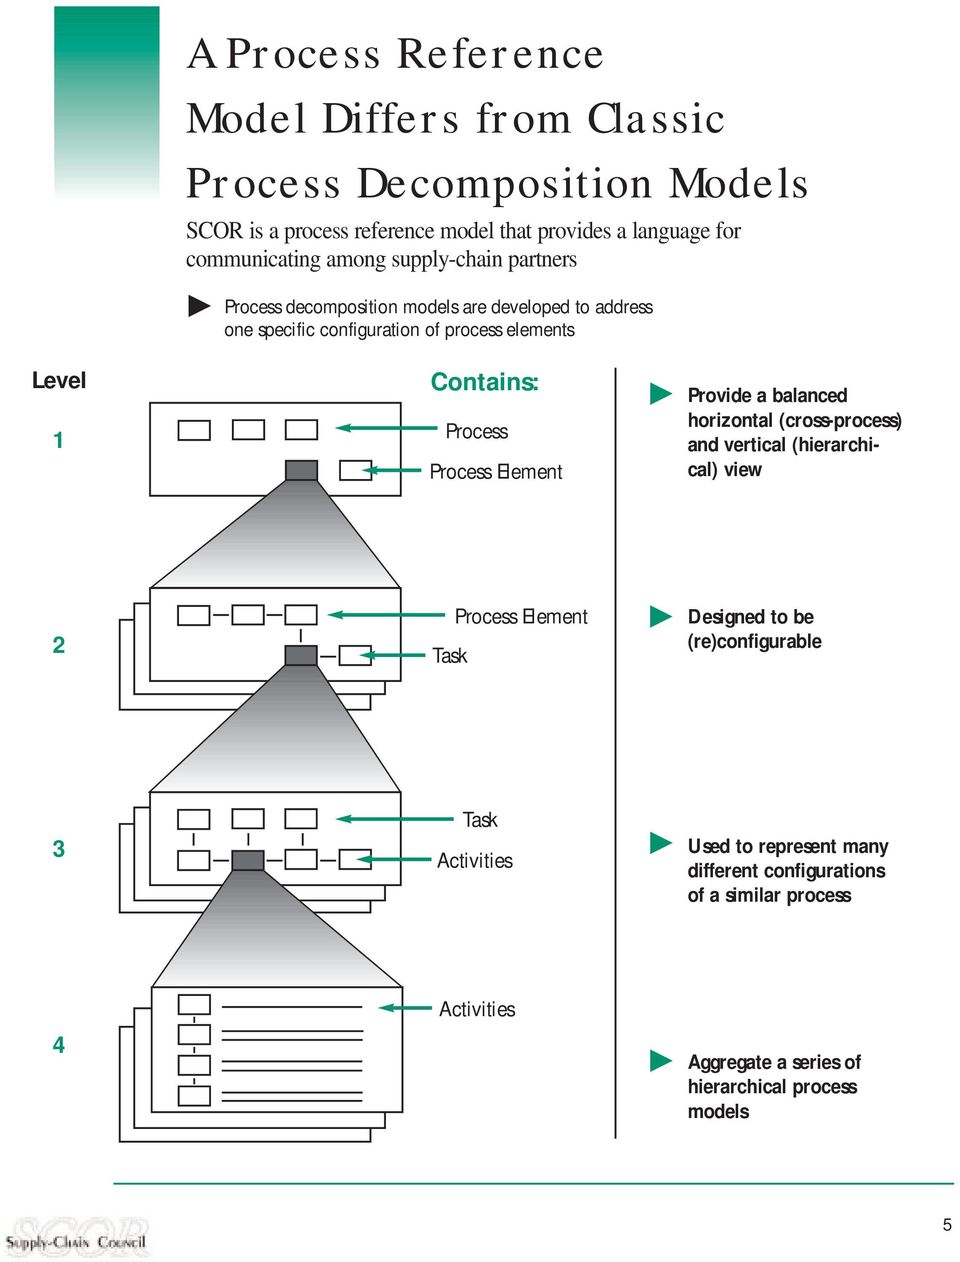 Process Process Element Provide a balanced horizontal (cross-process) and vertical (hierarchical) view 2 Task Process Element Designed to be